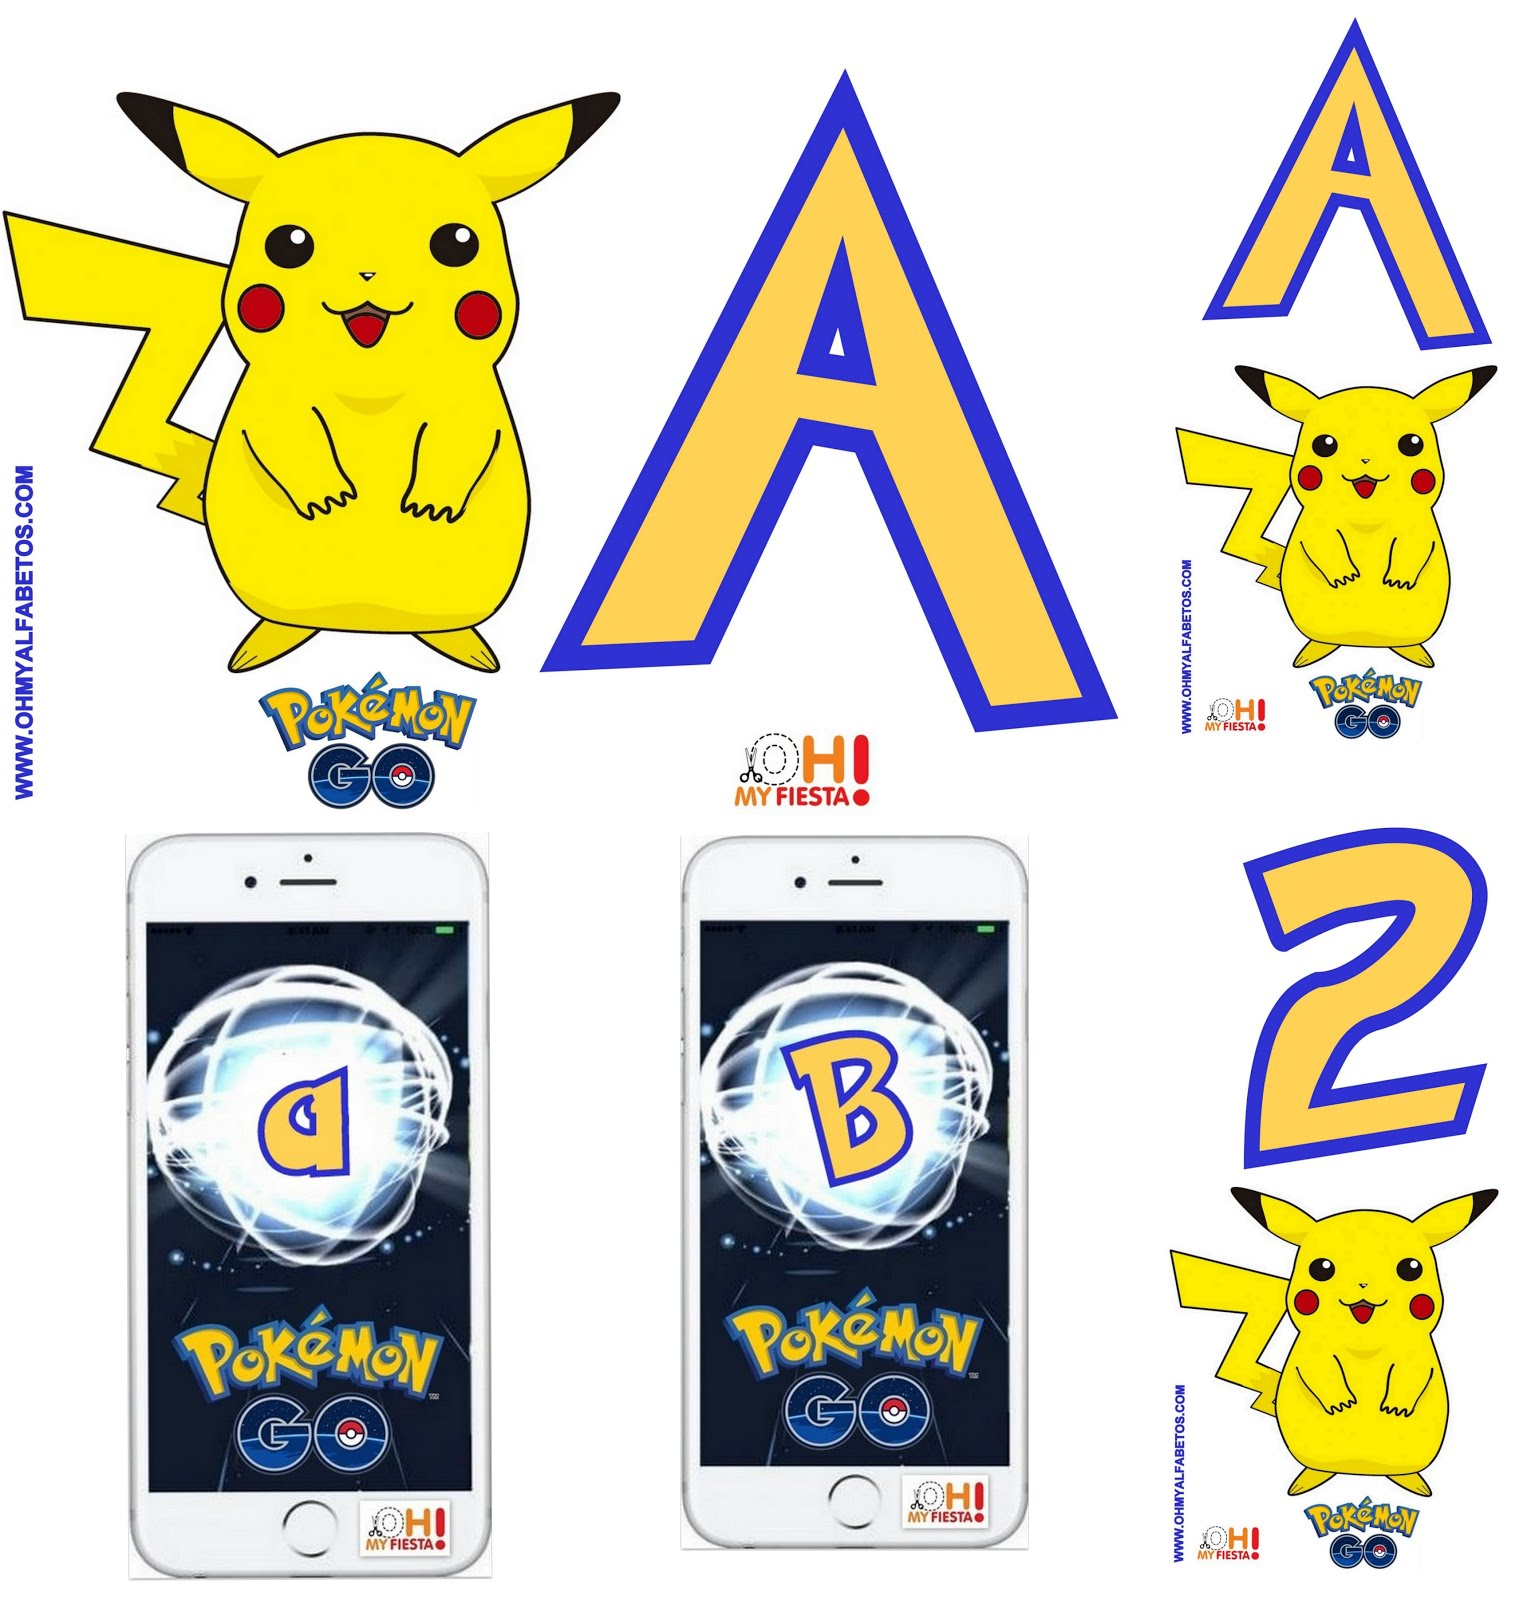 Check out our Special Pokemon Go Alphabets!